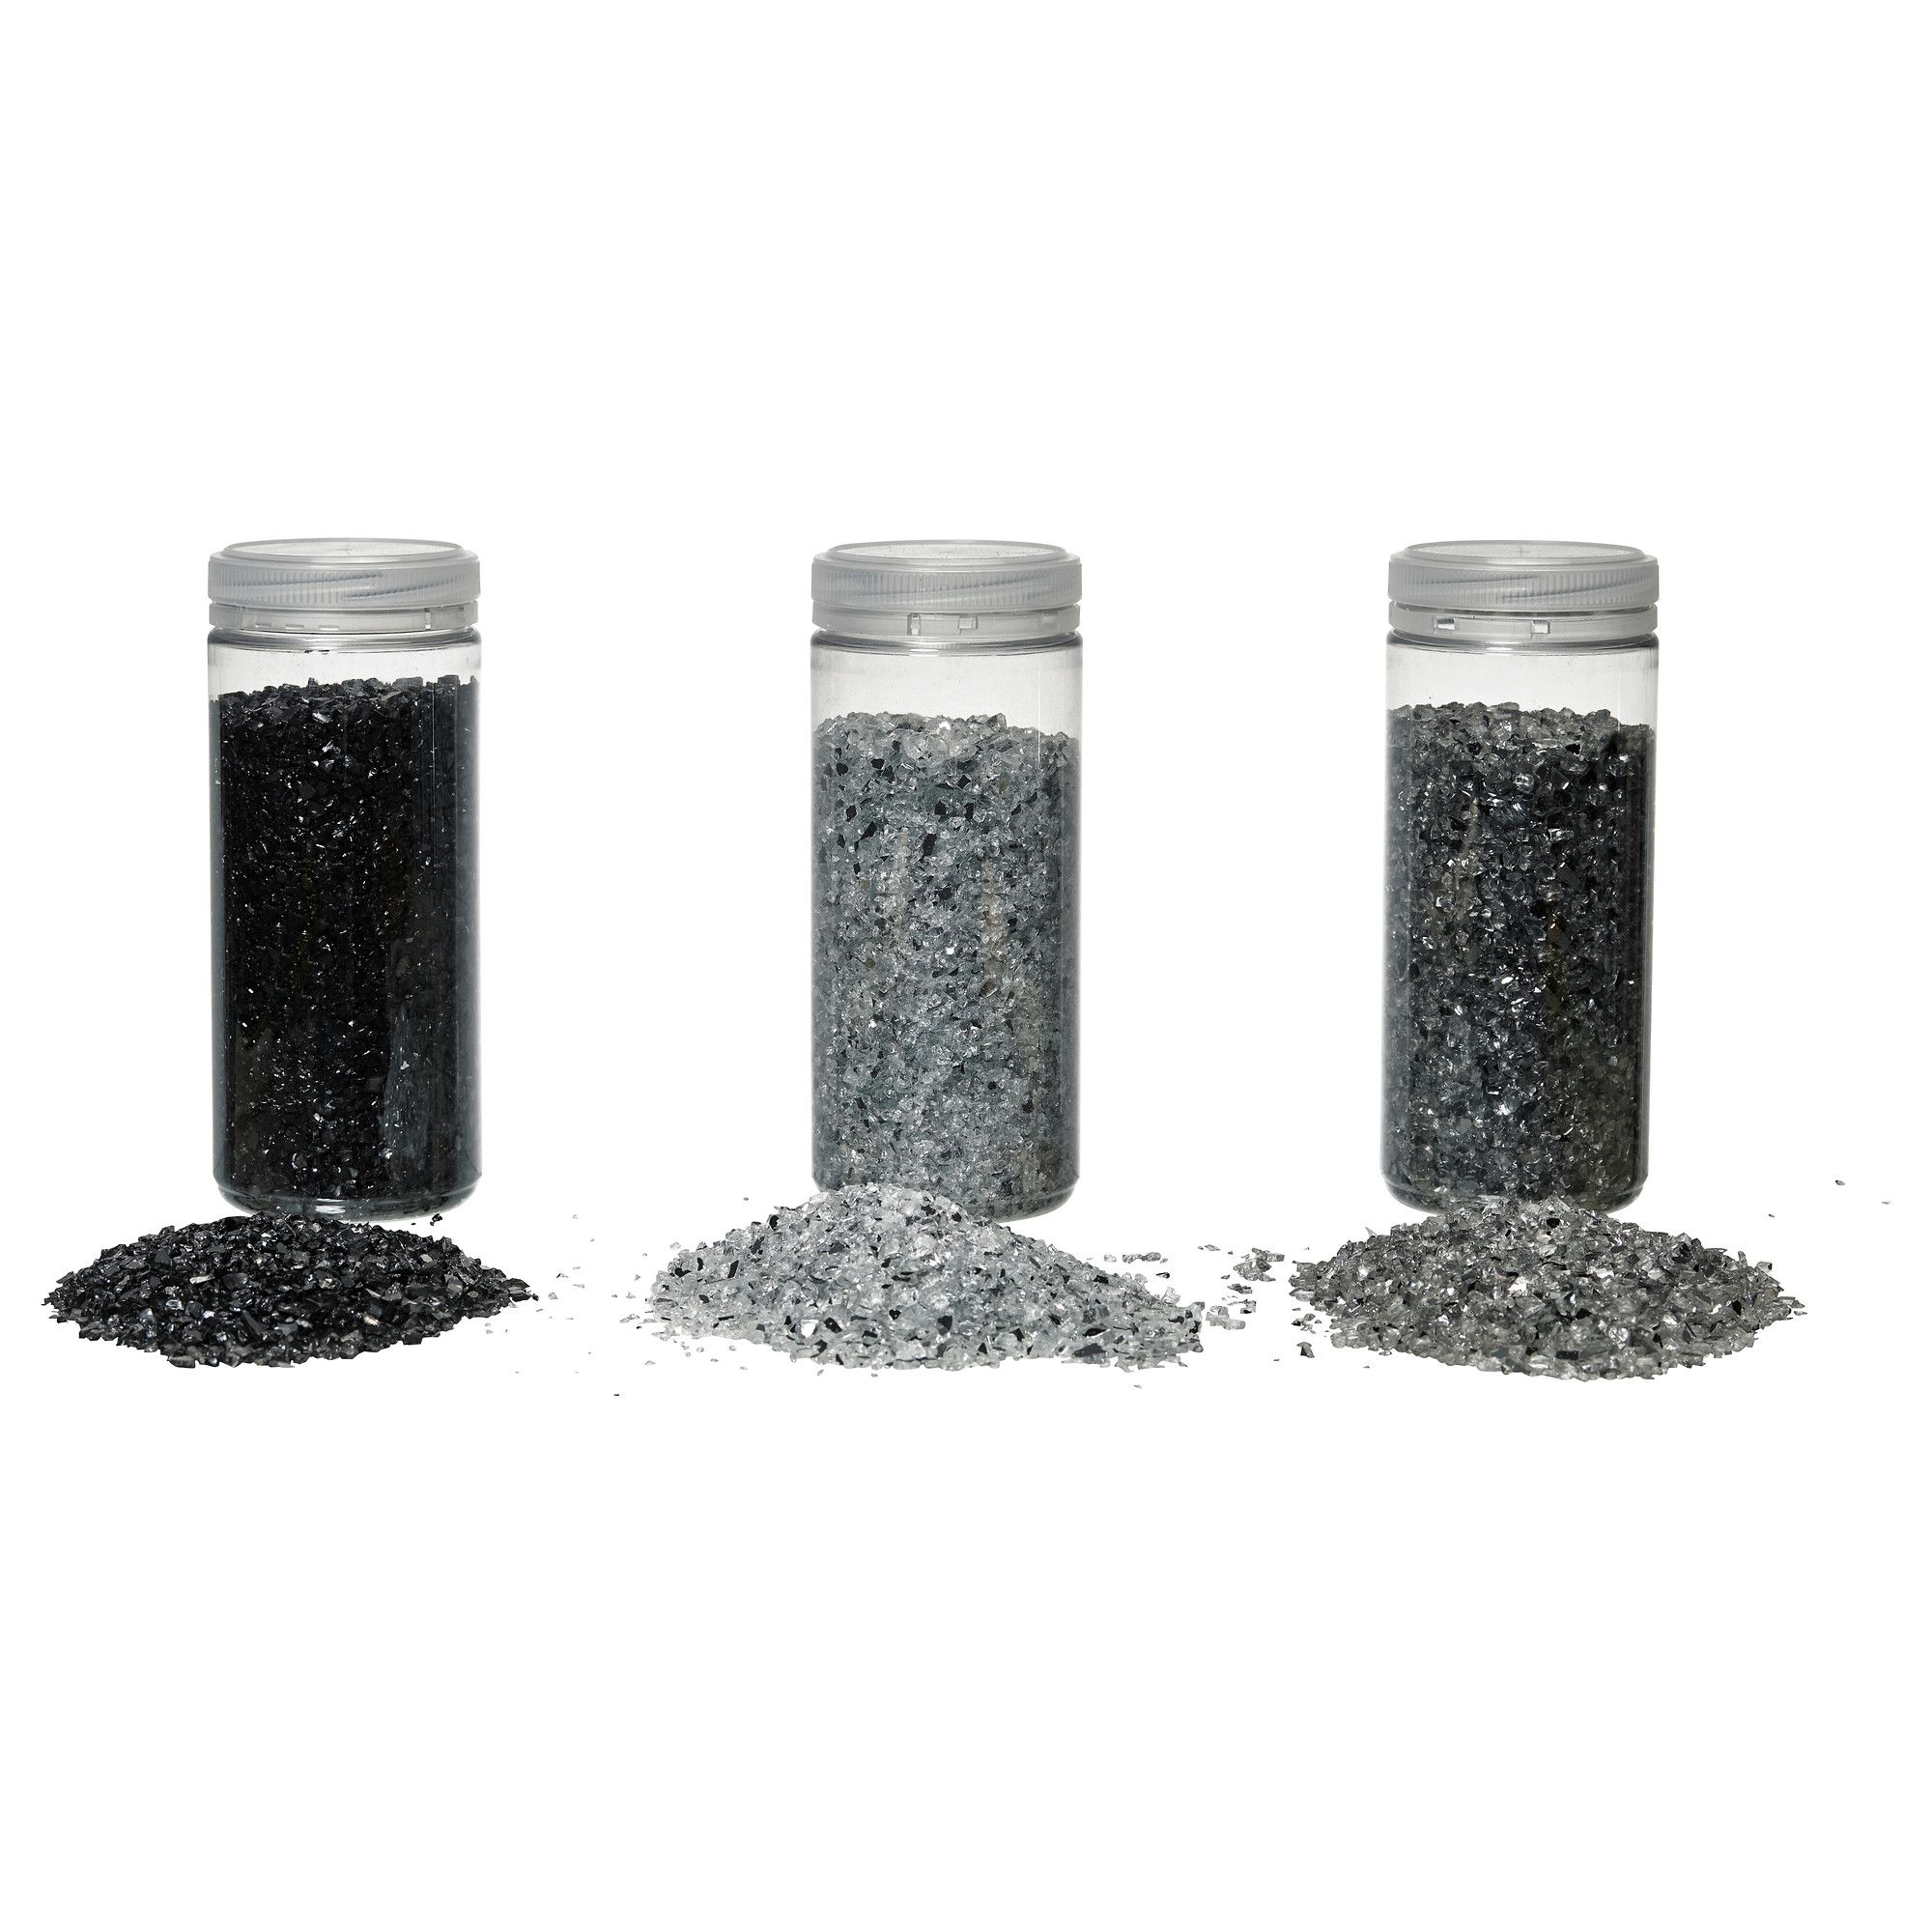 Kulrt decoration crushed glass ikea things i like kulrt decoration crushed glass ikea the crushed glass reflects light and makes a nice glittery decoration in a bowl or vase reviewsmspy